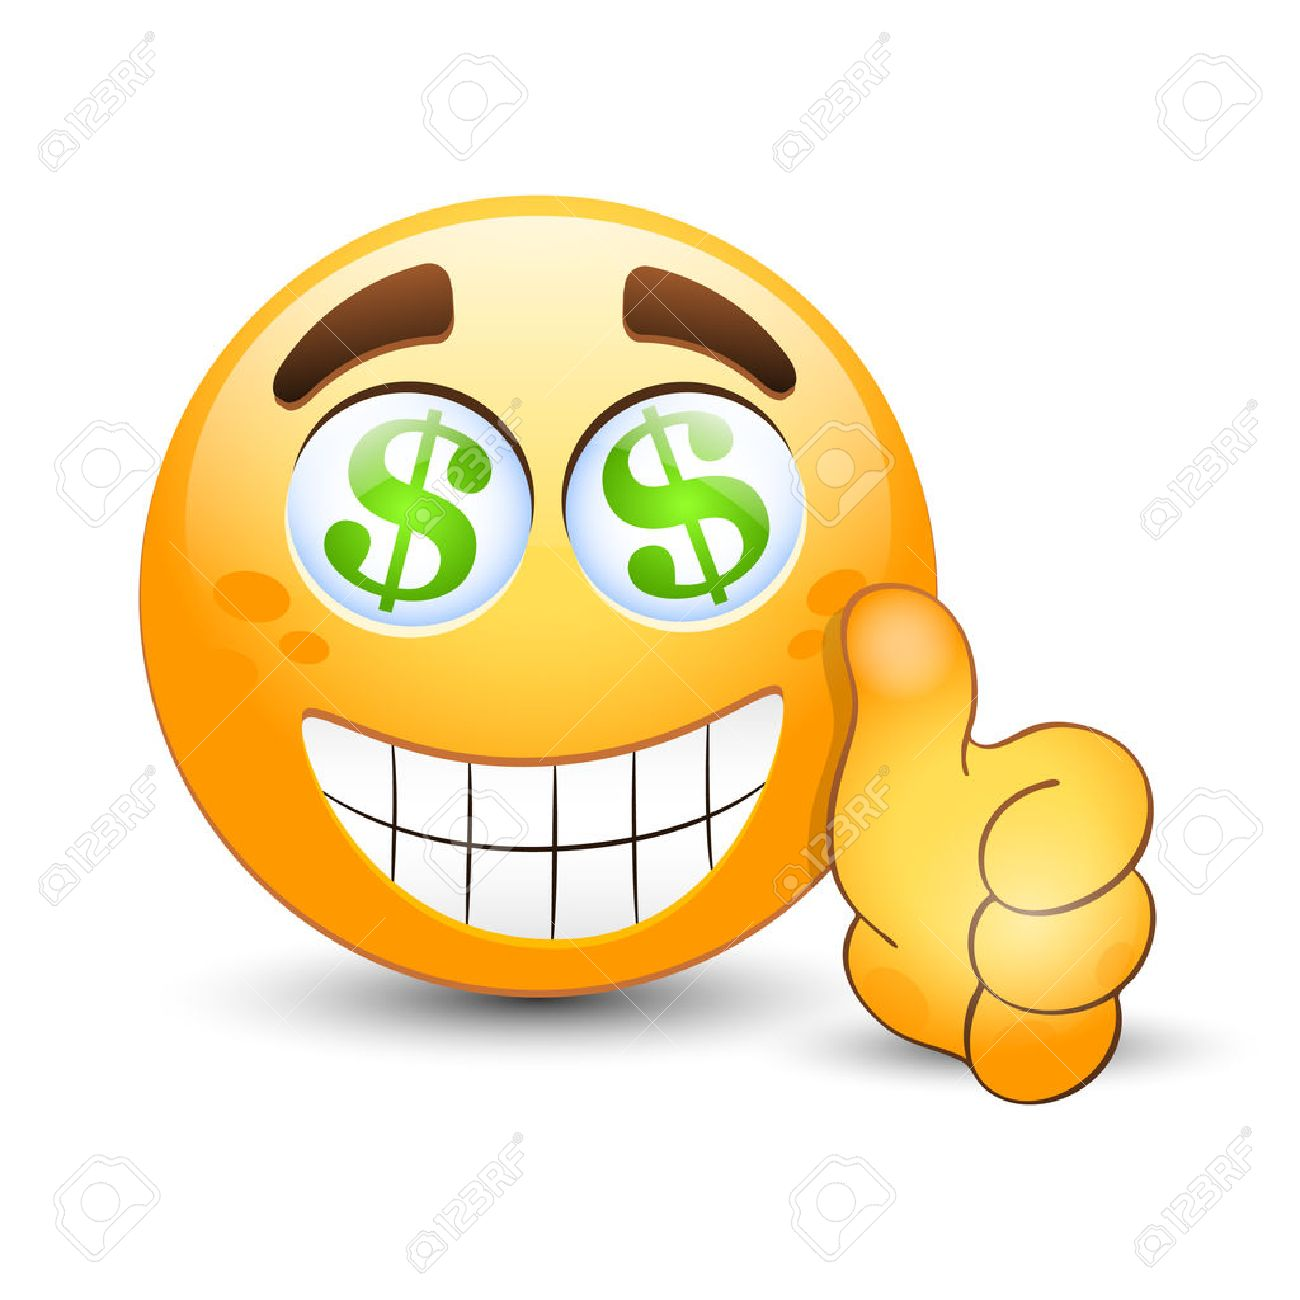 Vector emoticon with thumb up and dollar sign in the eyes - 42964861